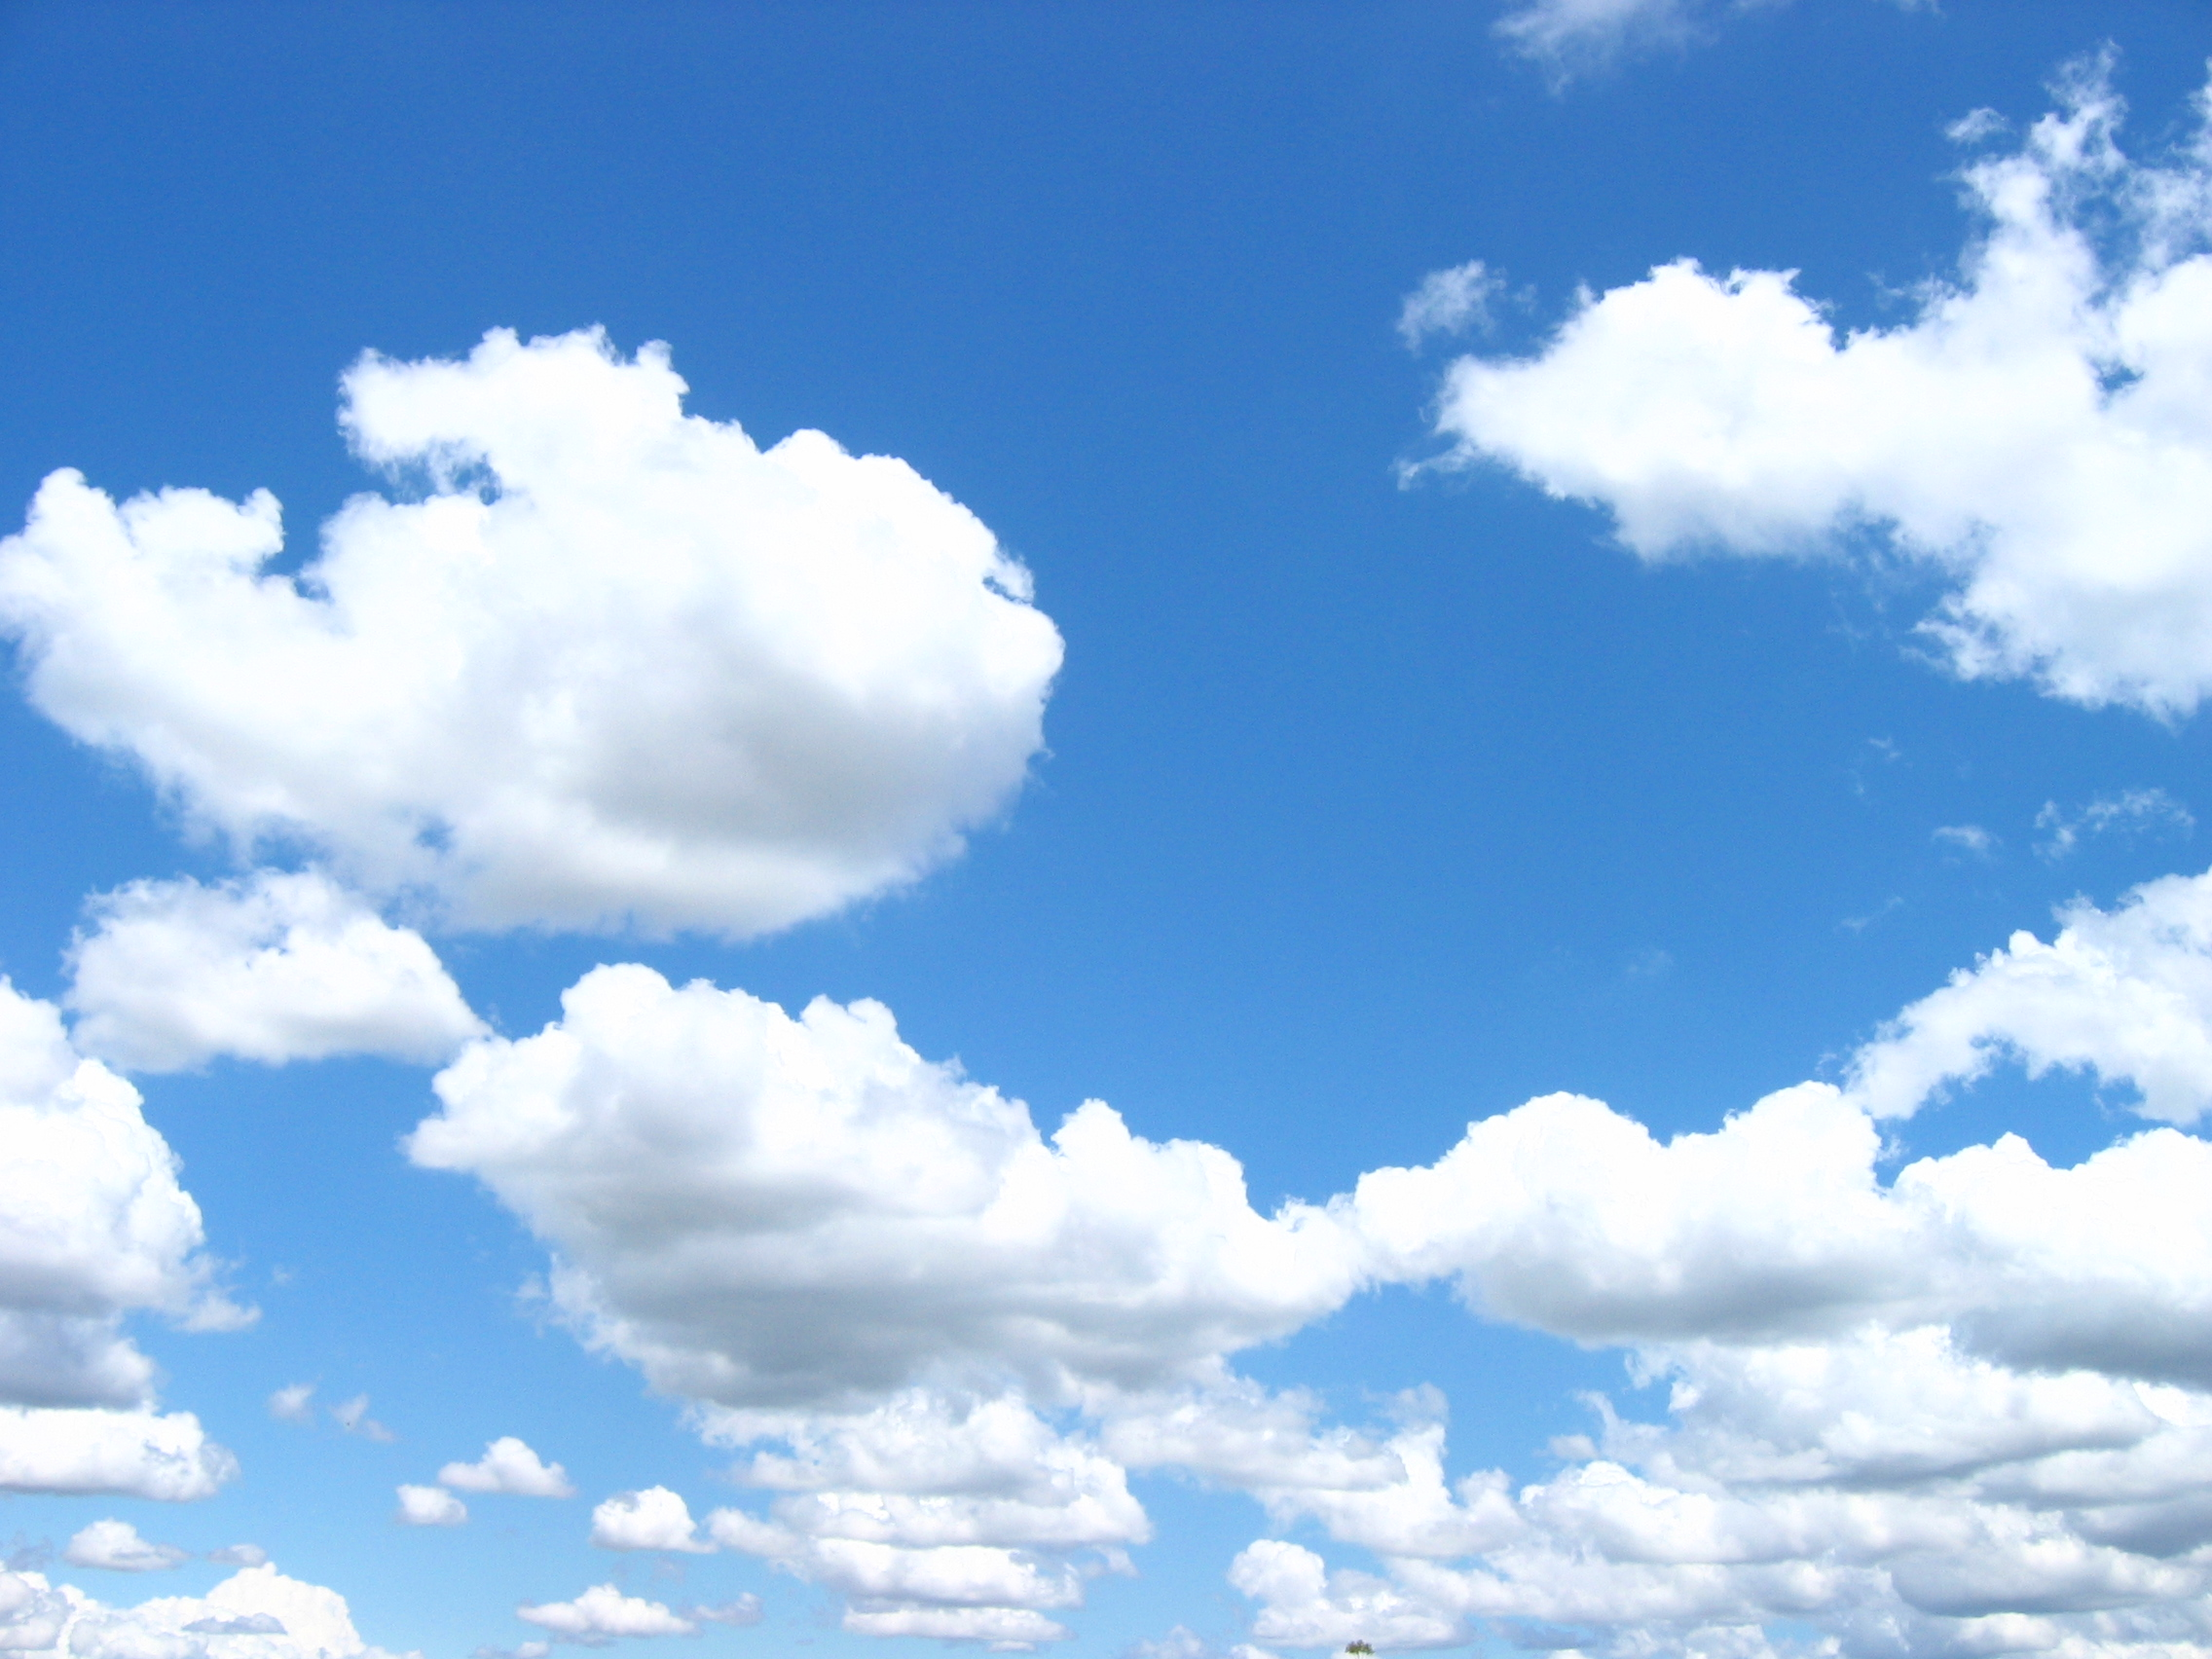 SCMSP Expands Cloud Computing Capabilities Meeting Market Demands